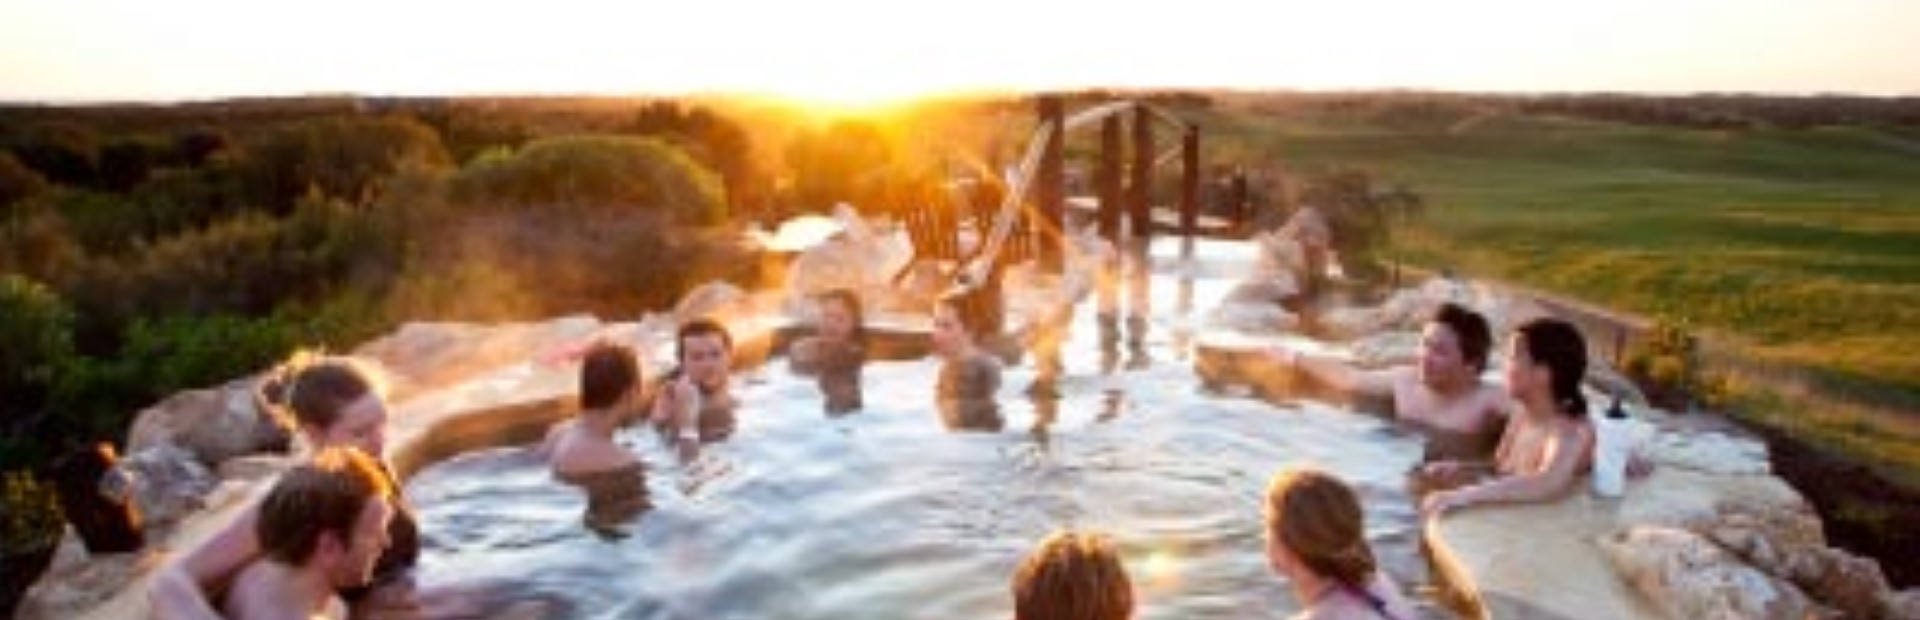 Peninsula Hot Springs bath house Experience